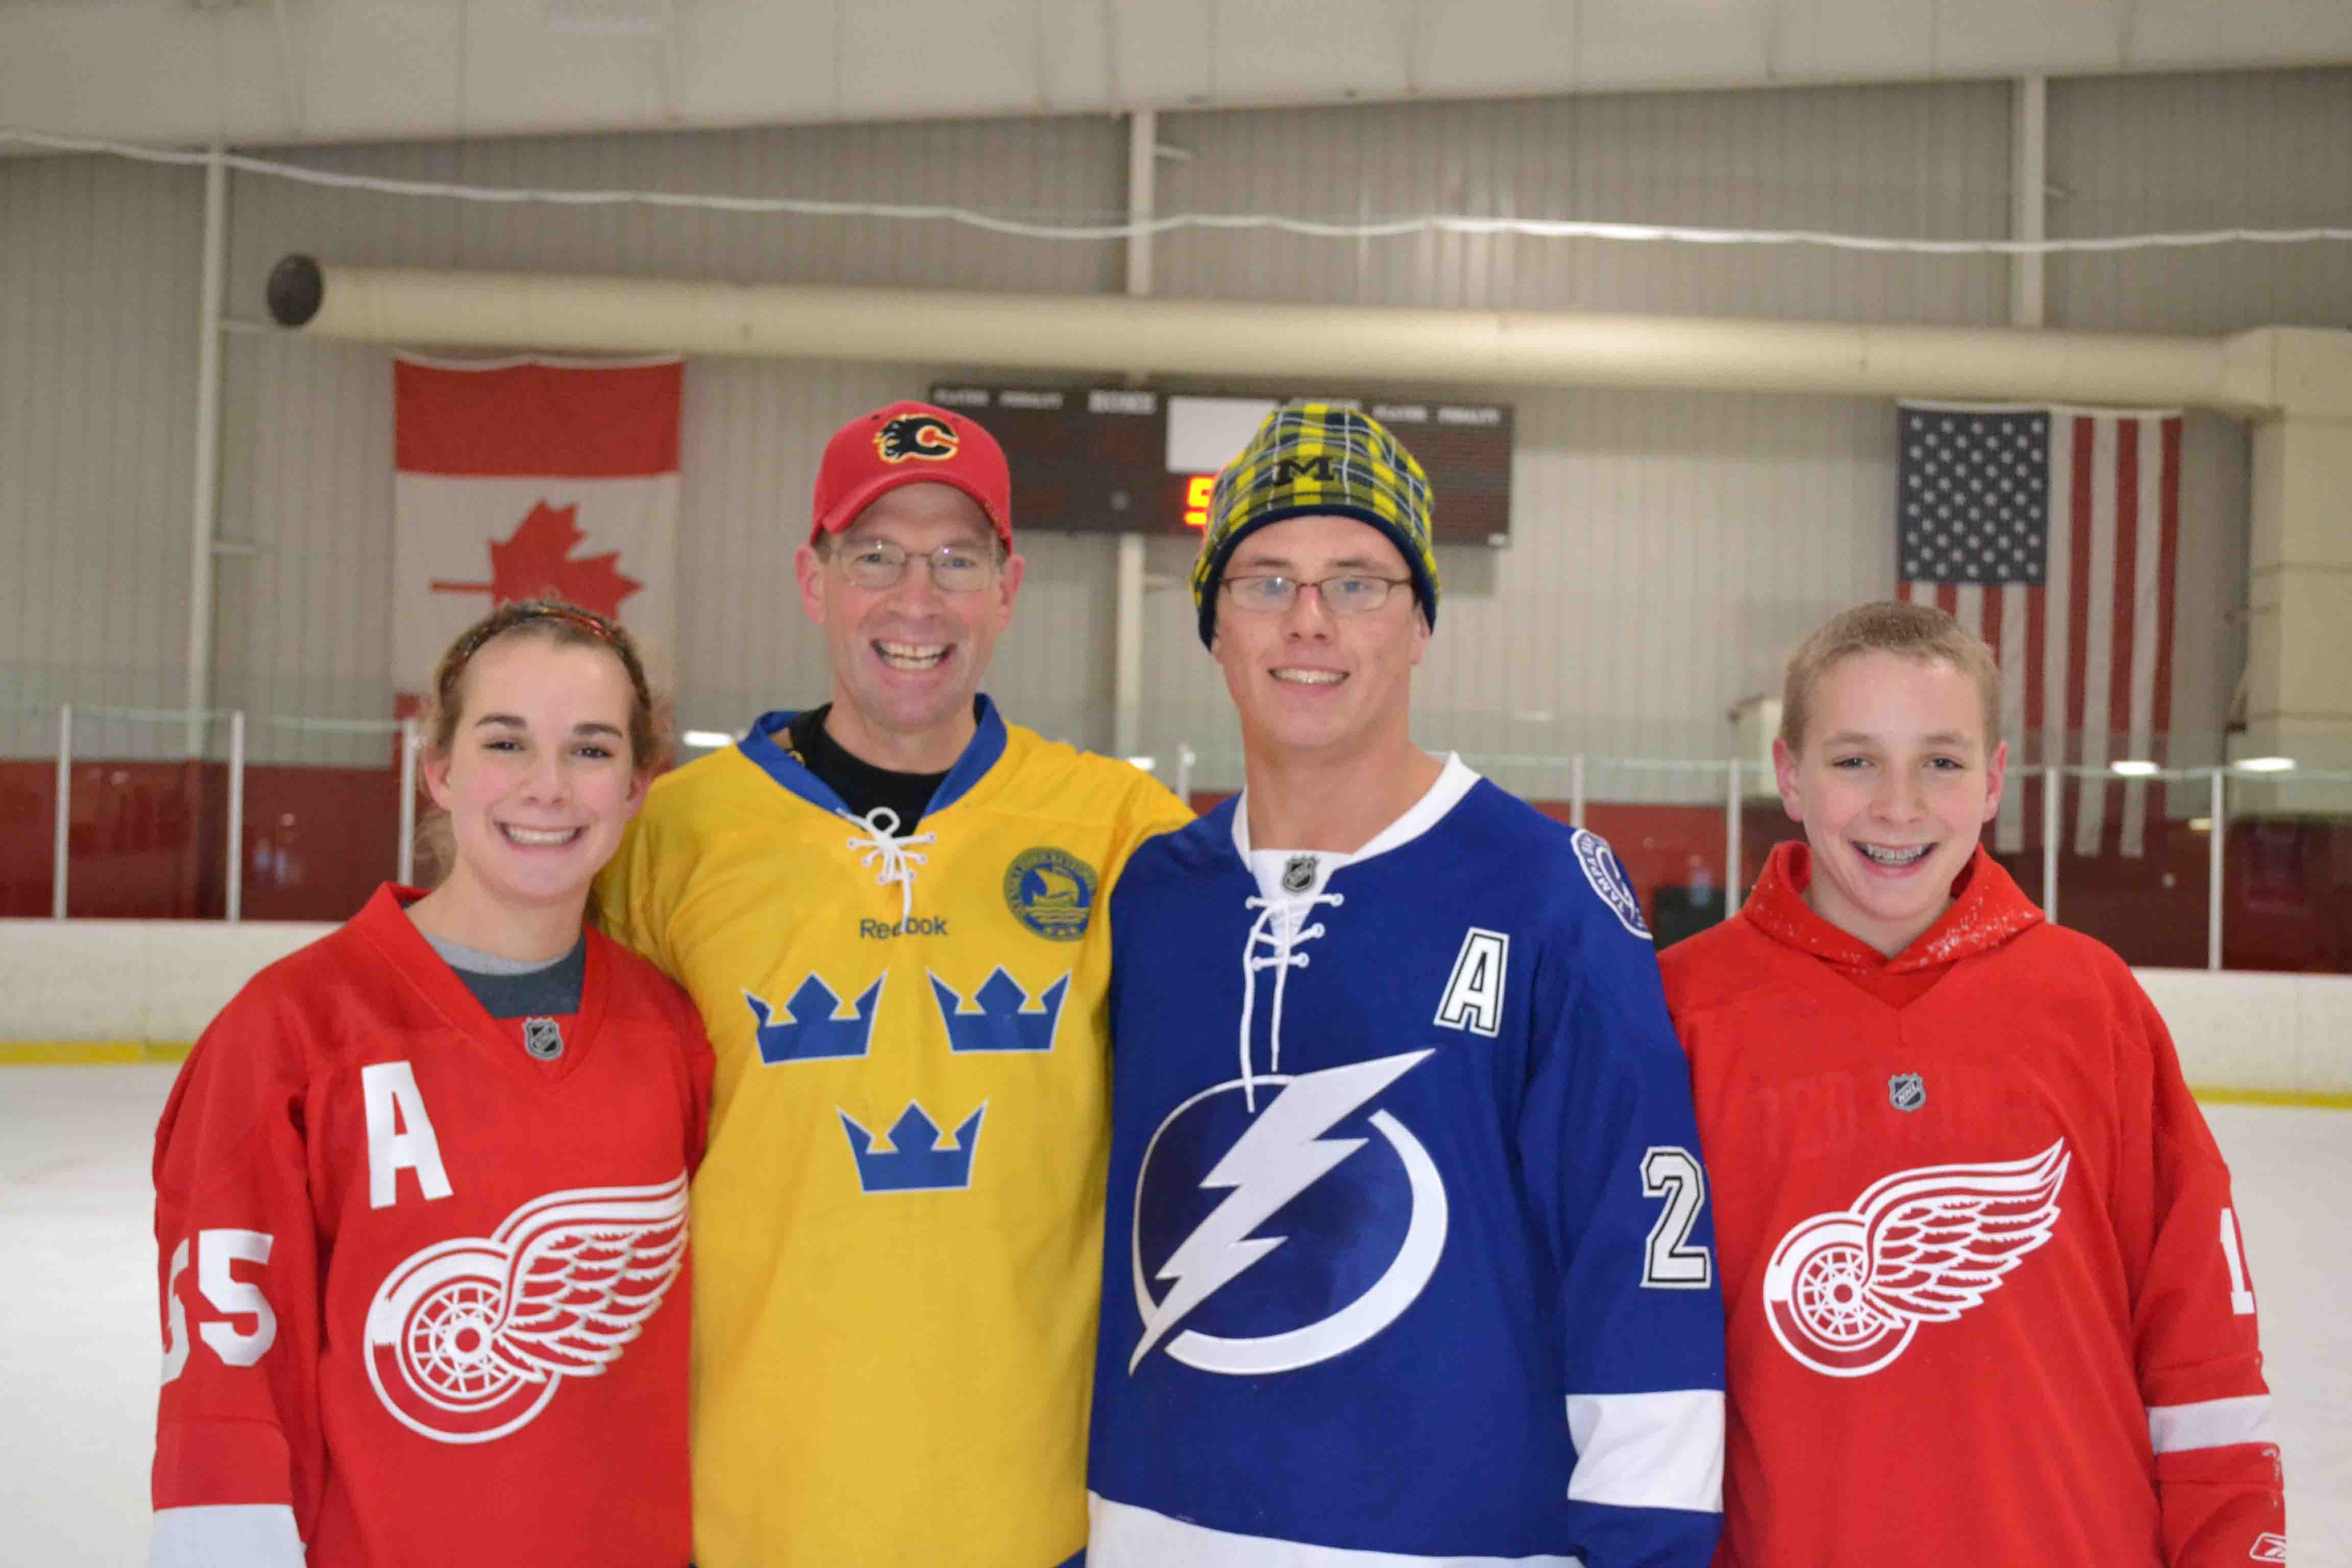 The Stafford clan gets Mr. Weed's vote as best group of jerseys.